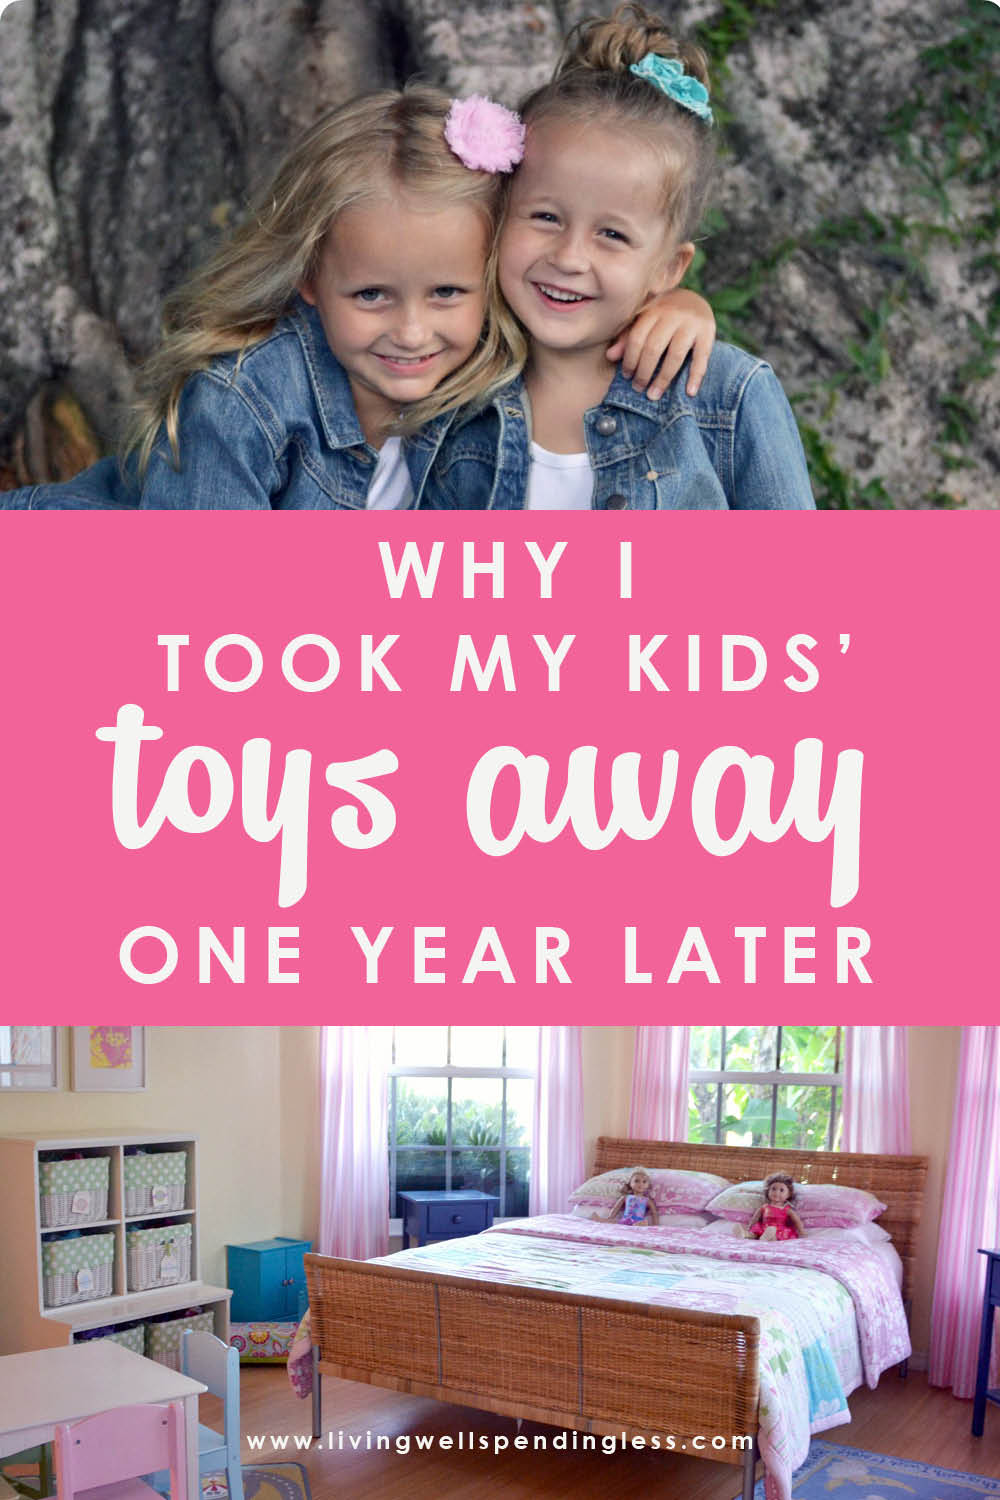 A fed up mom set limits and cleaned out her kids room. One year later, the girls have seen some major changes. A must read to find out what happened!